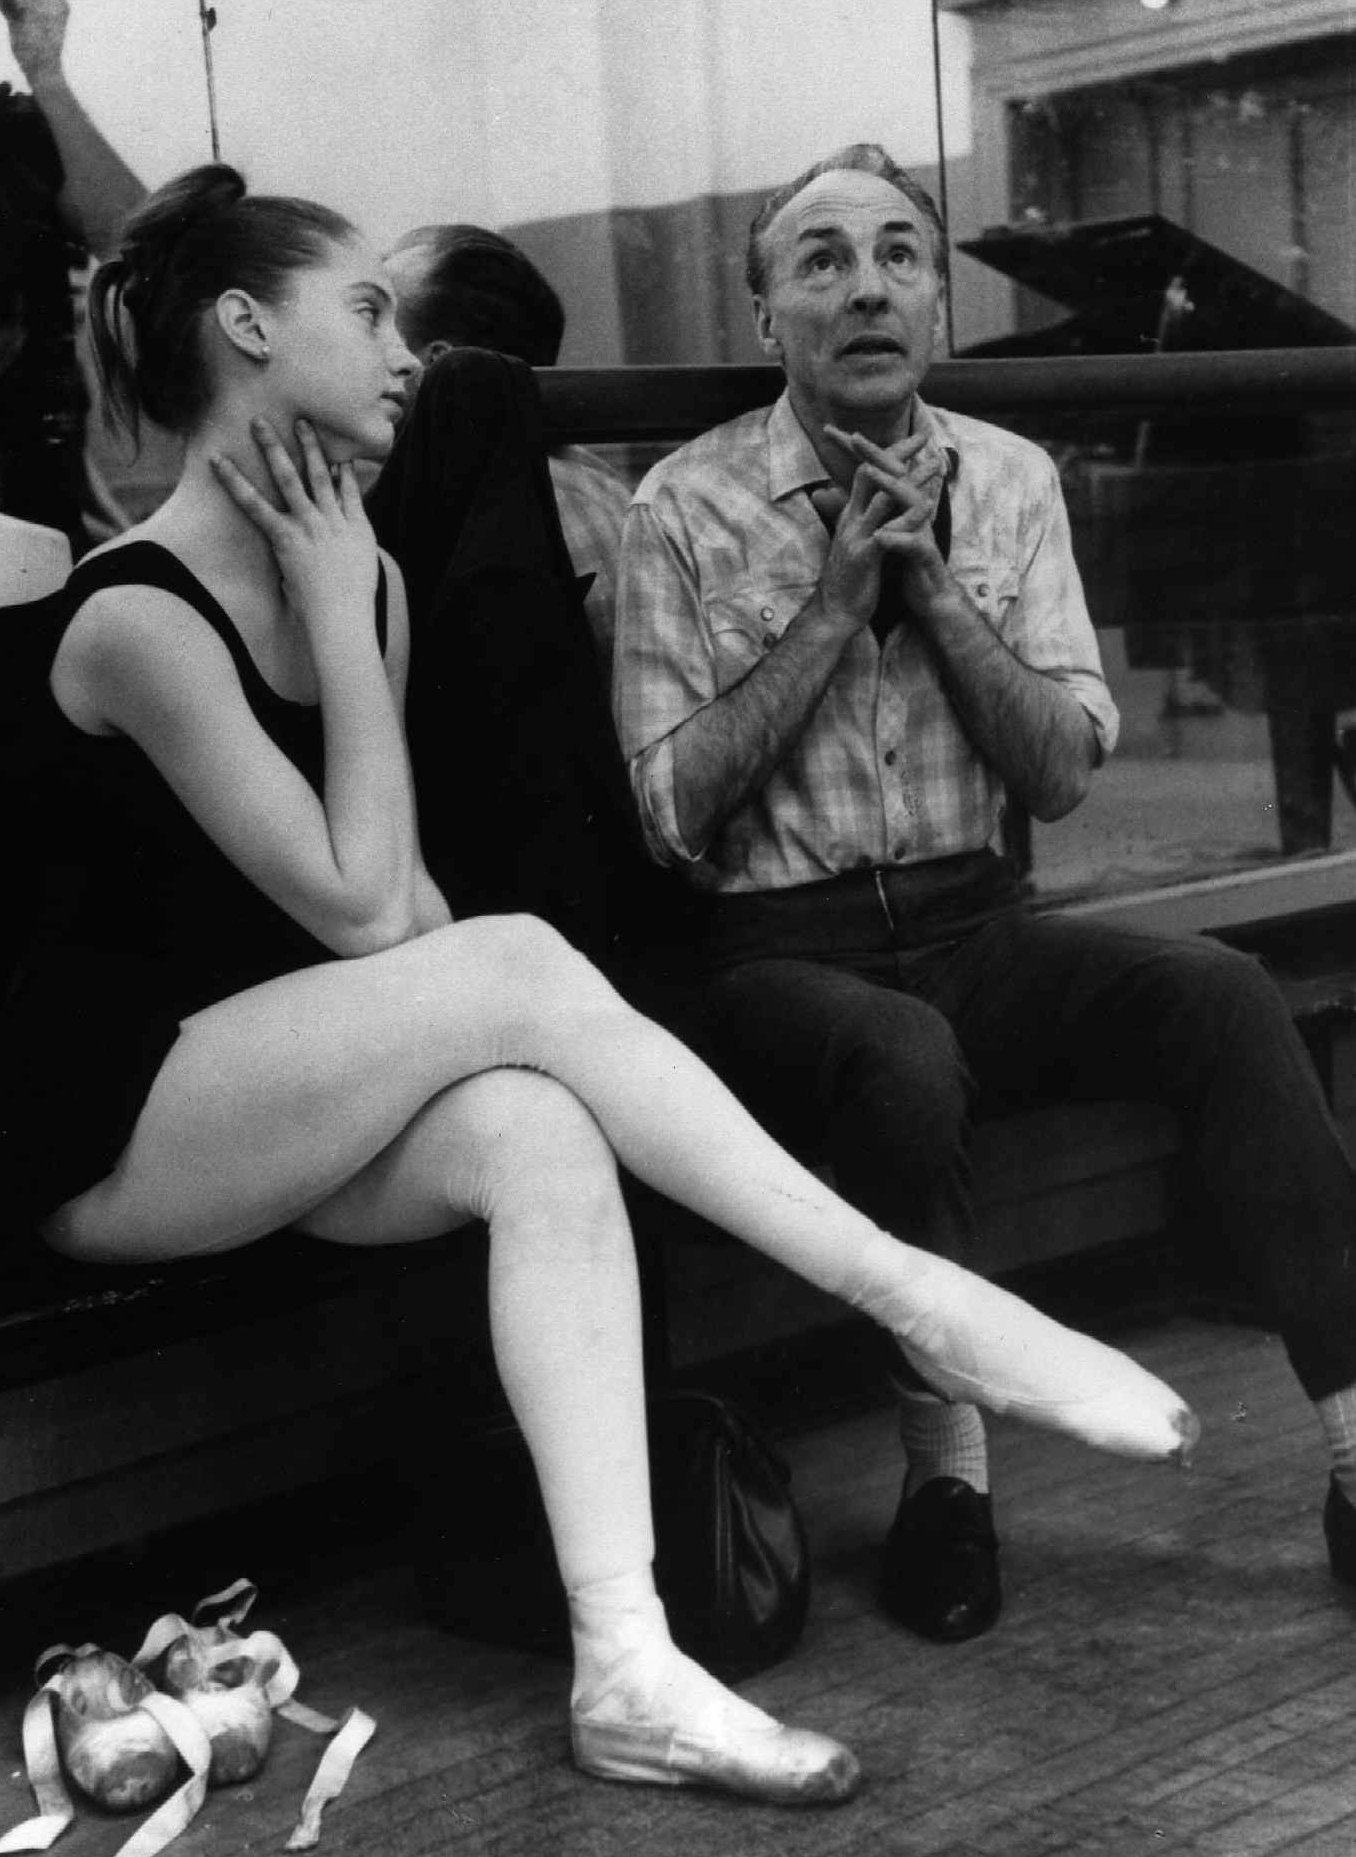 Ballerina Suzanne Farrell, 17, listens to choreographer George Balanchine during a 1963 rehearsal in New York.